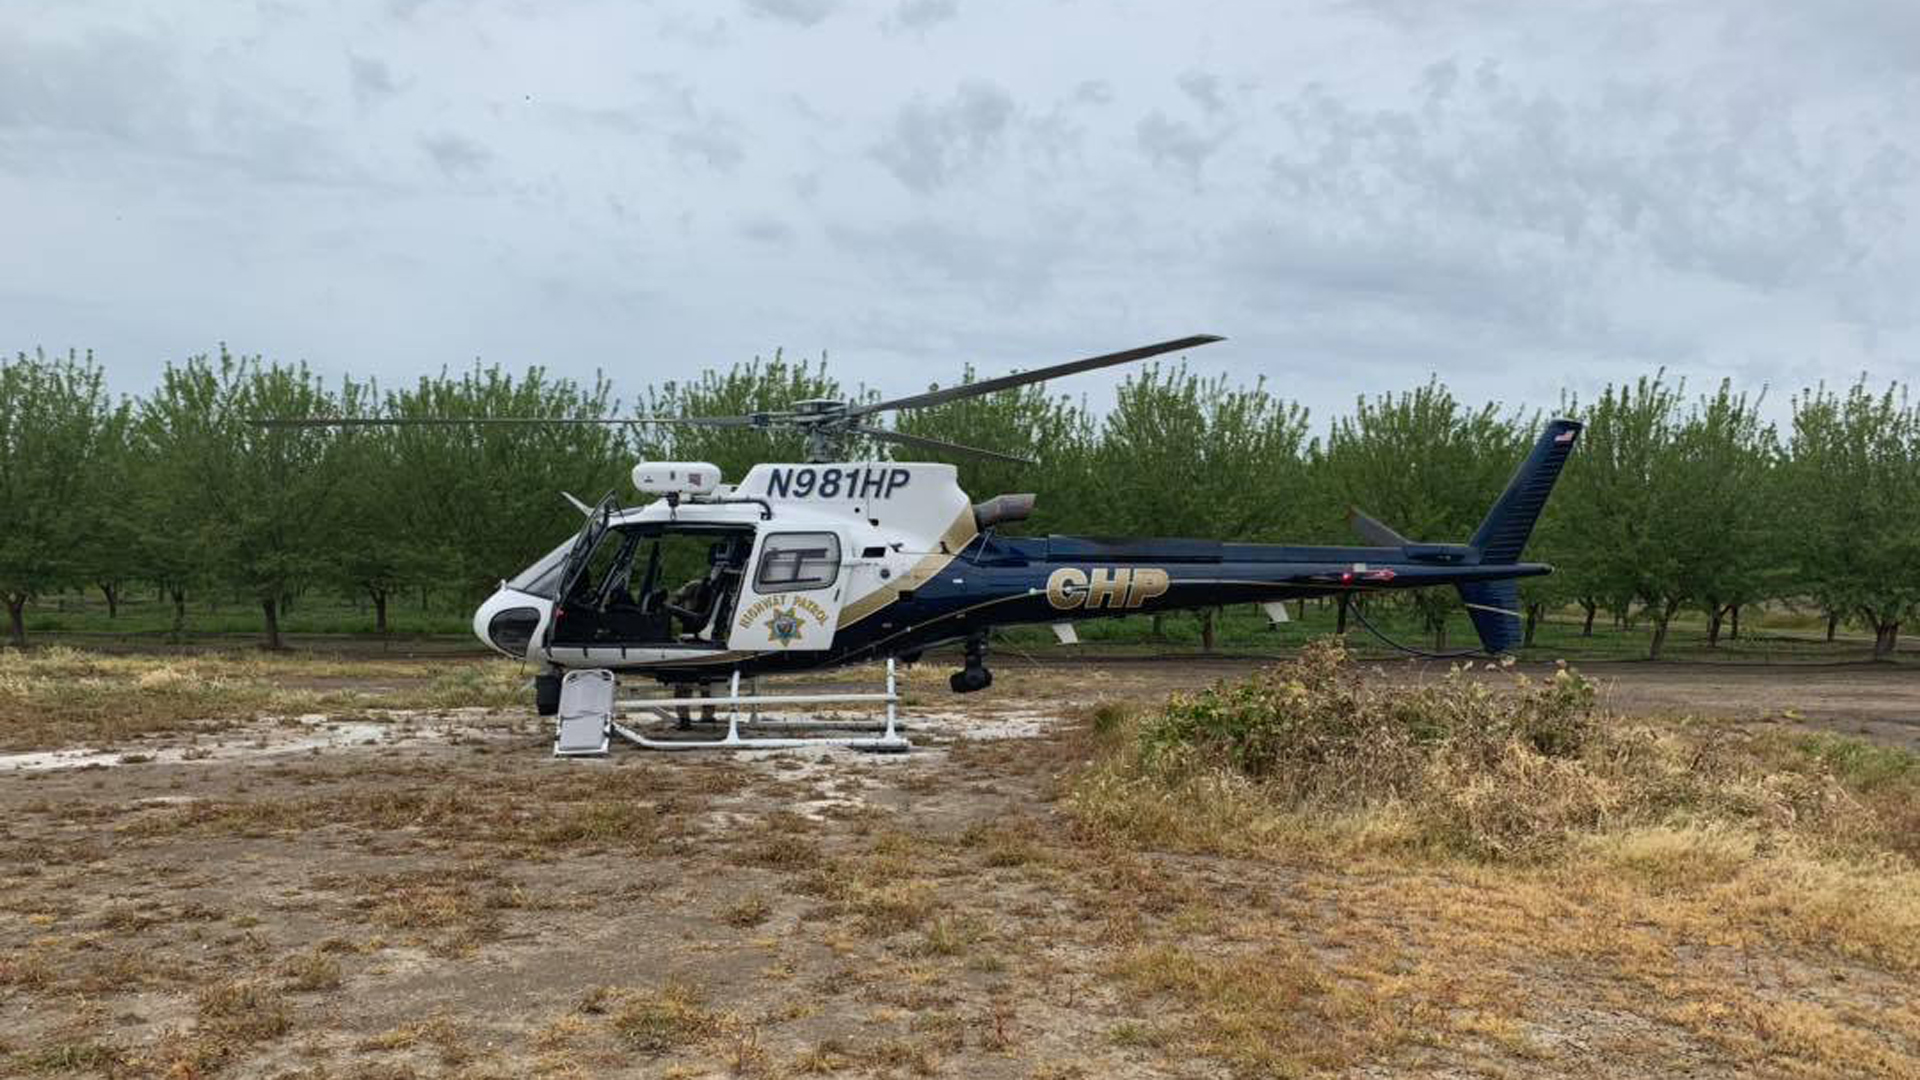 The California Highway Patrol released this photo on April 1, 2019 of a helicopter that responded to the Weyland Canal in Dixon following reports of two unresponsive teens.